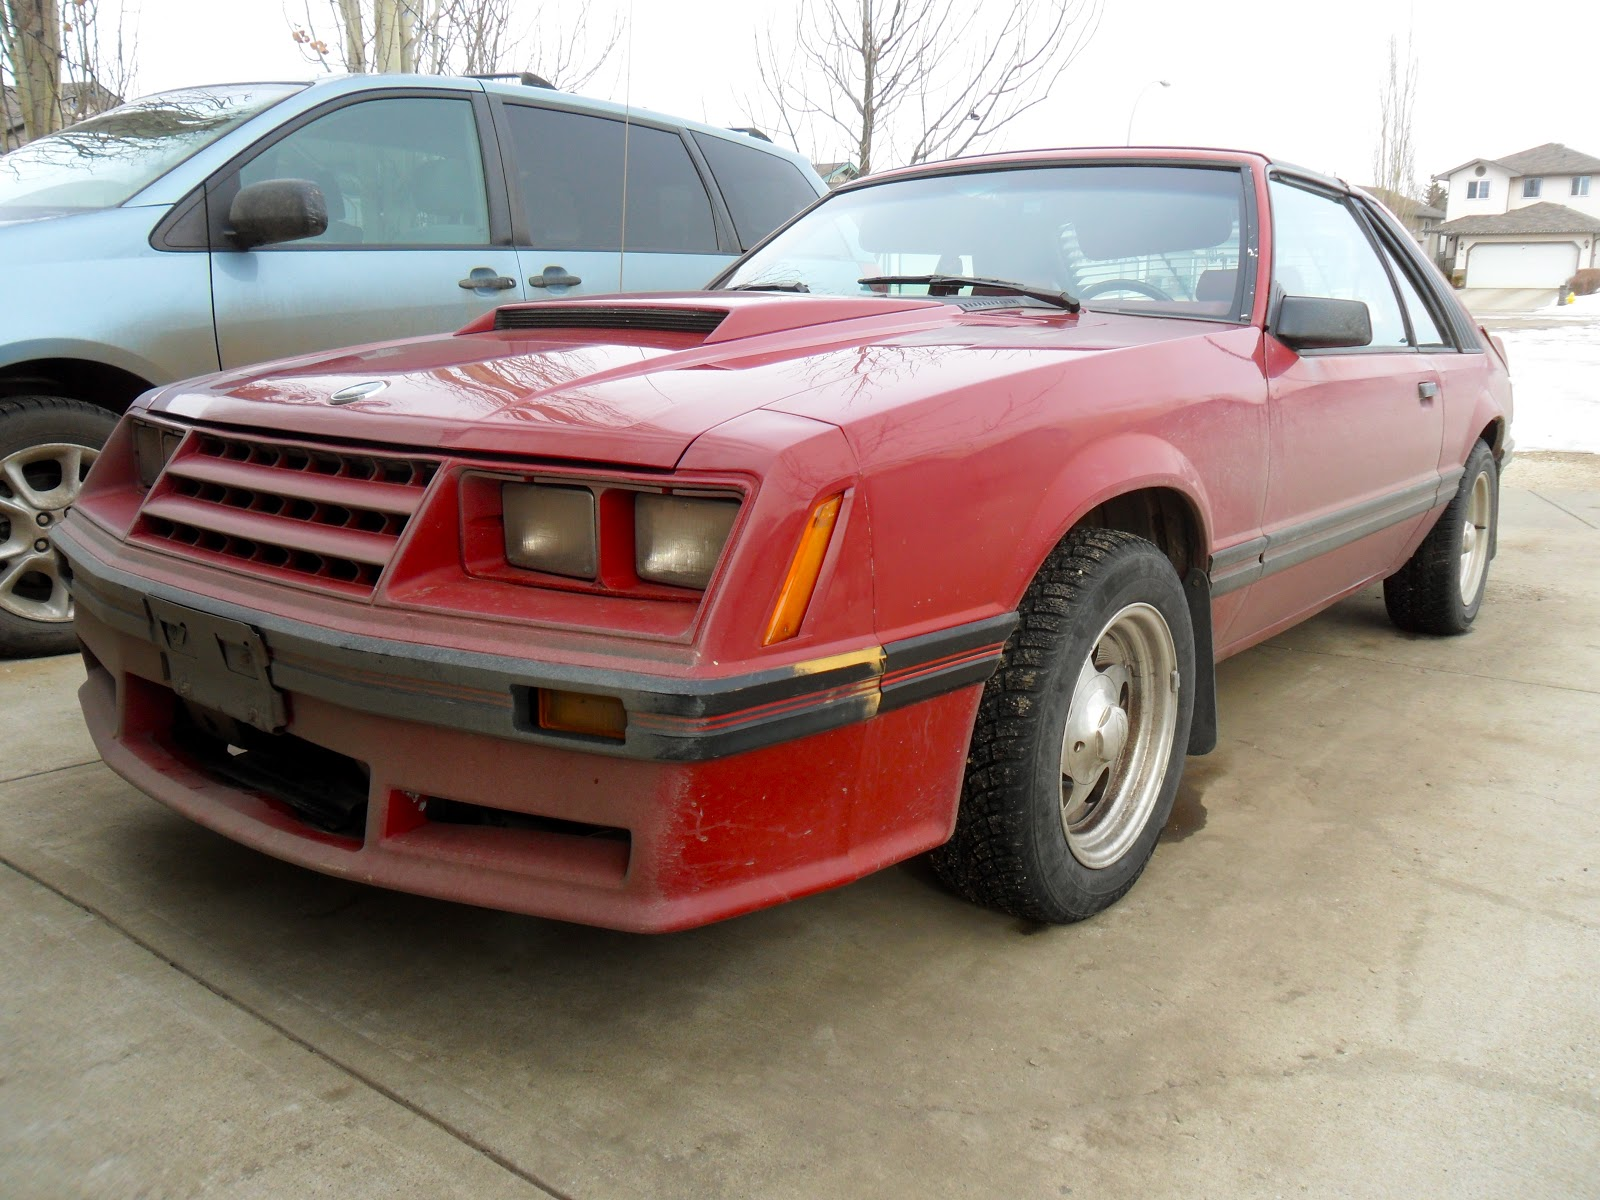 1982 Mustang Gt >> Trials of a 1982 Mustang GT